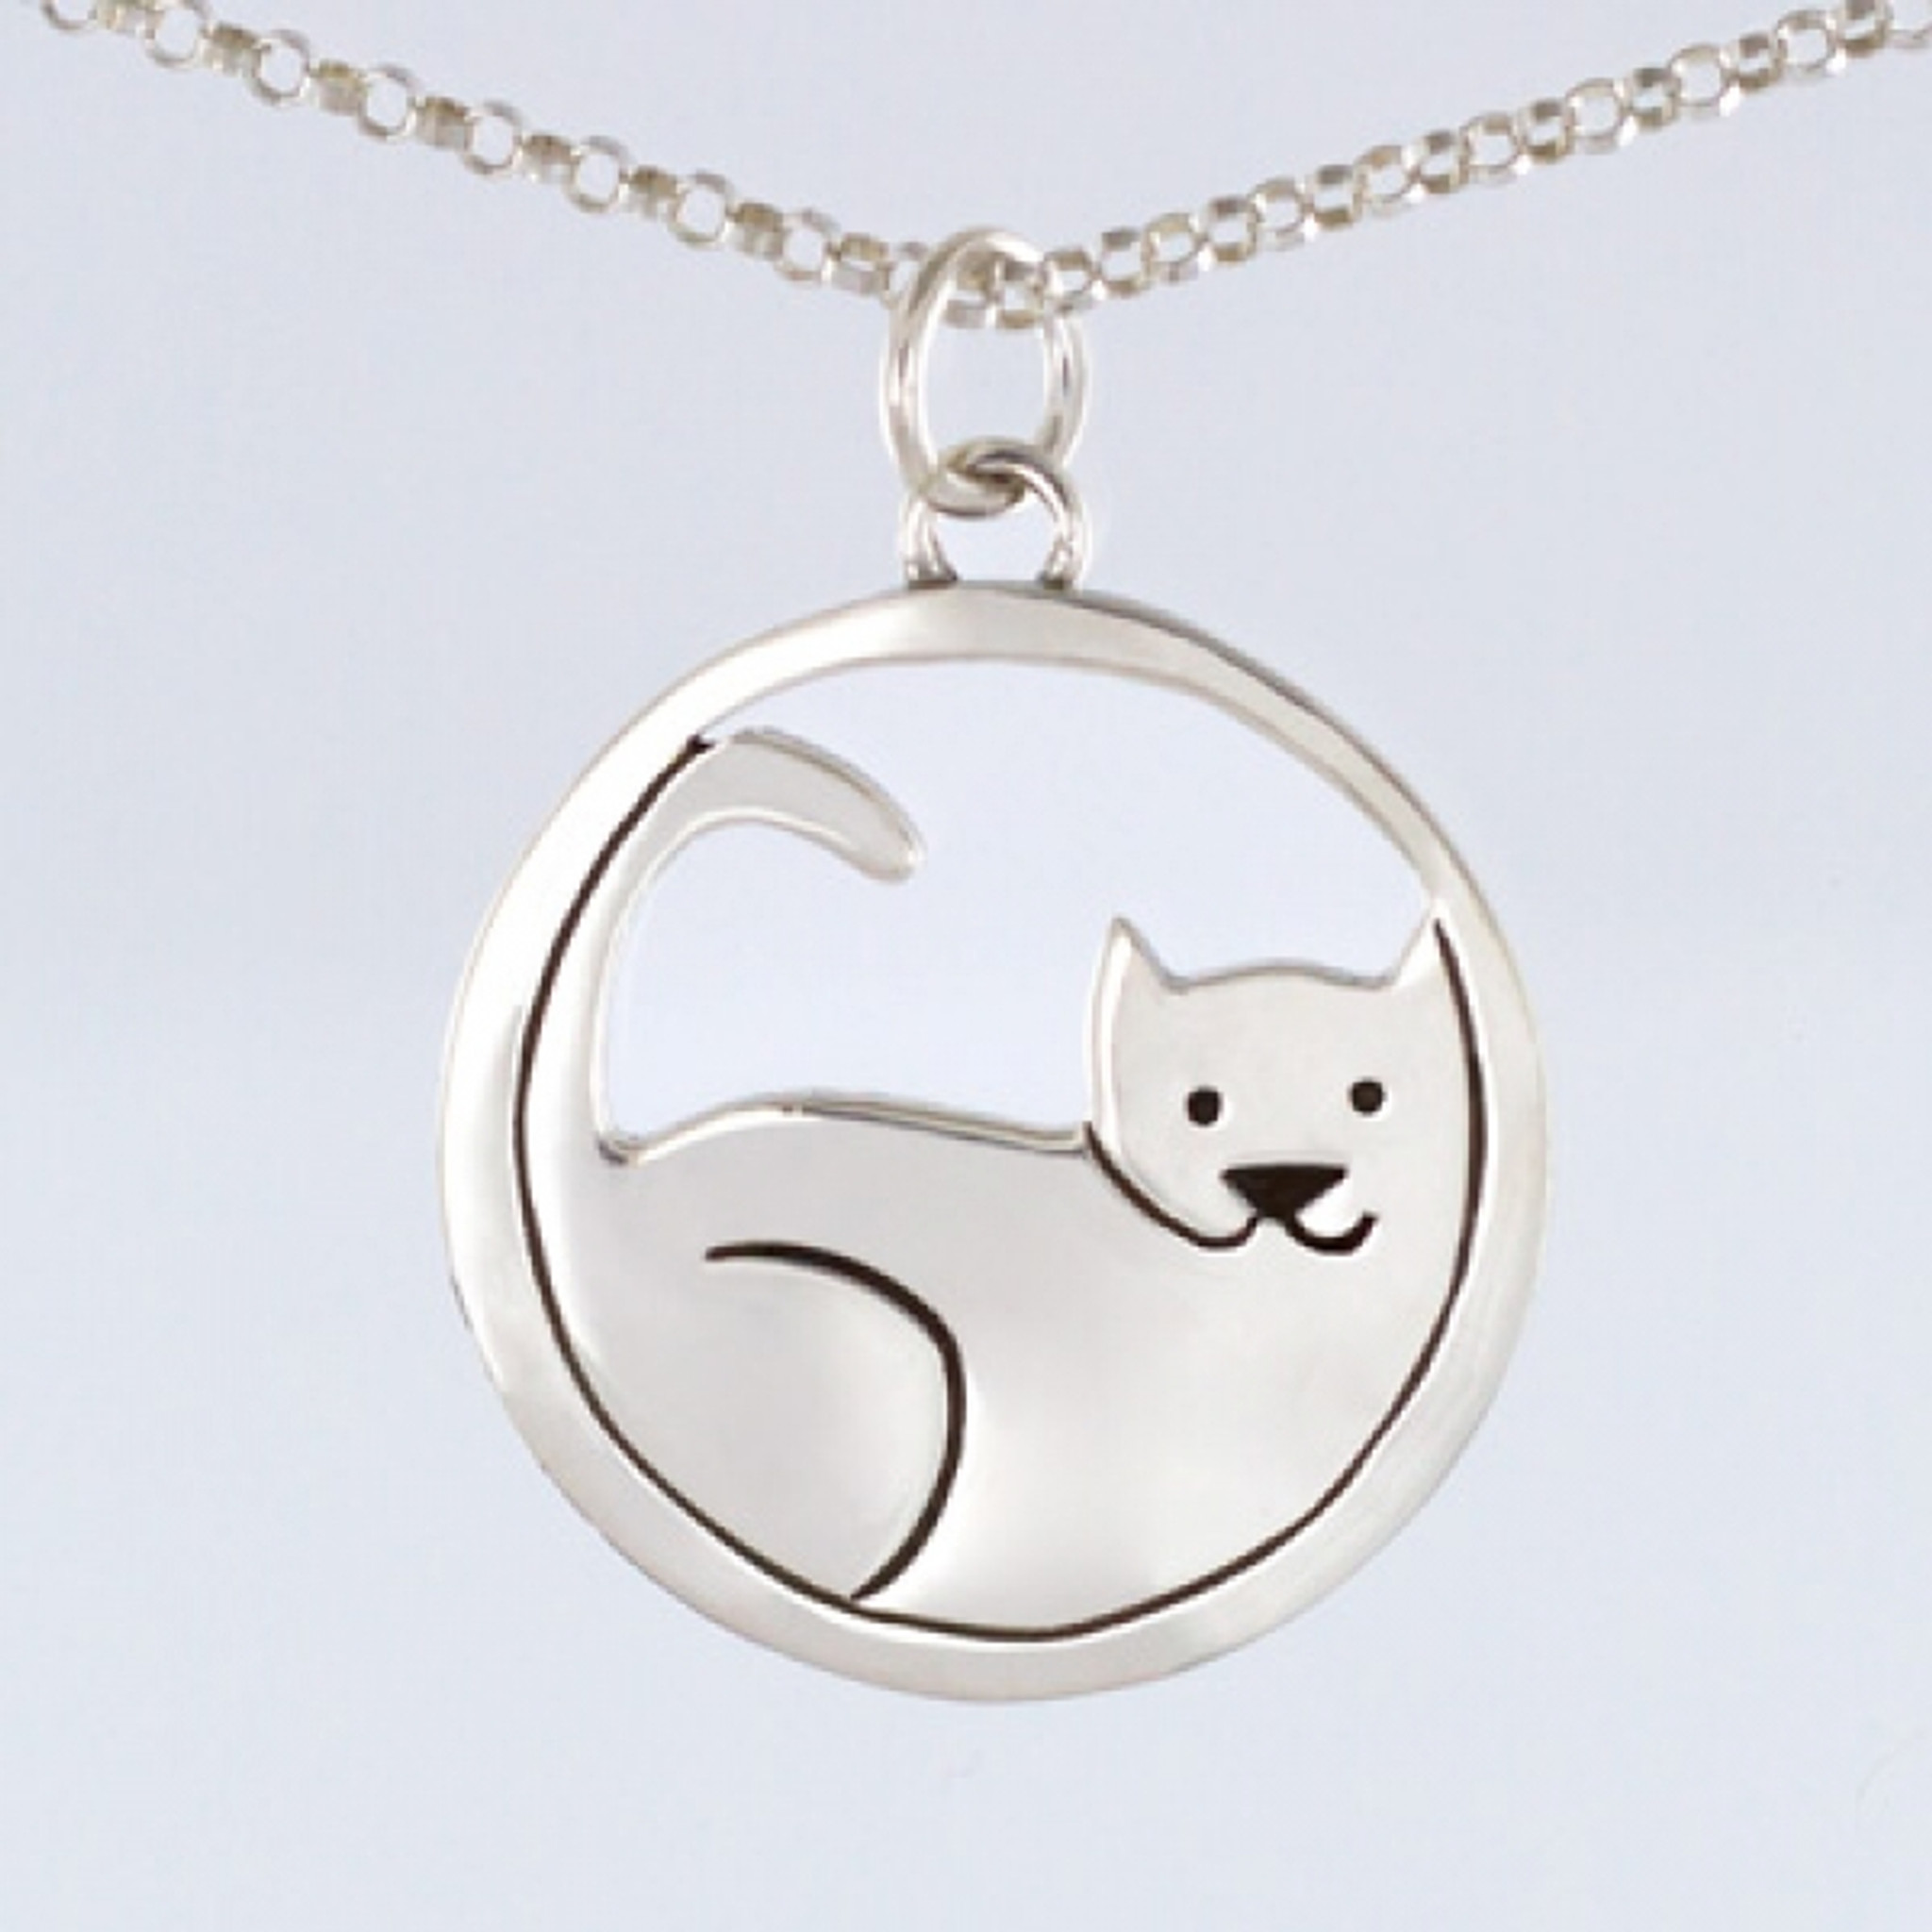 Sterling silver cat pendant with chain silver necklace sterling silver cat pendant with chain fashion jewelry aloadofball Images